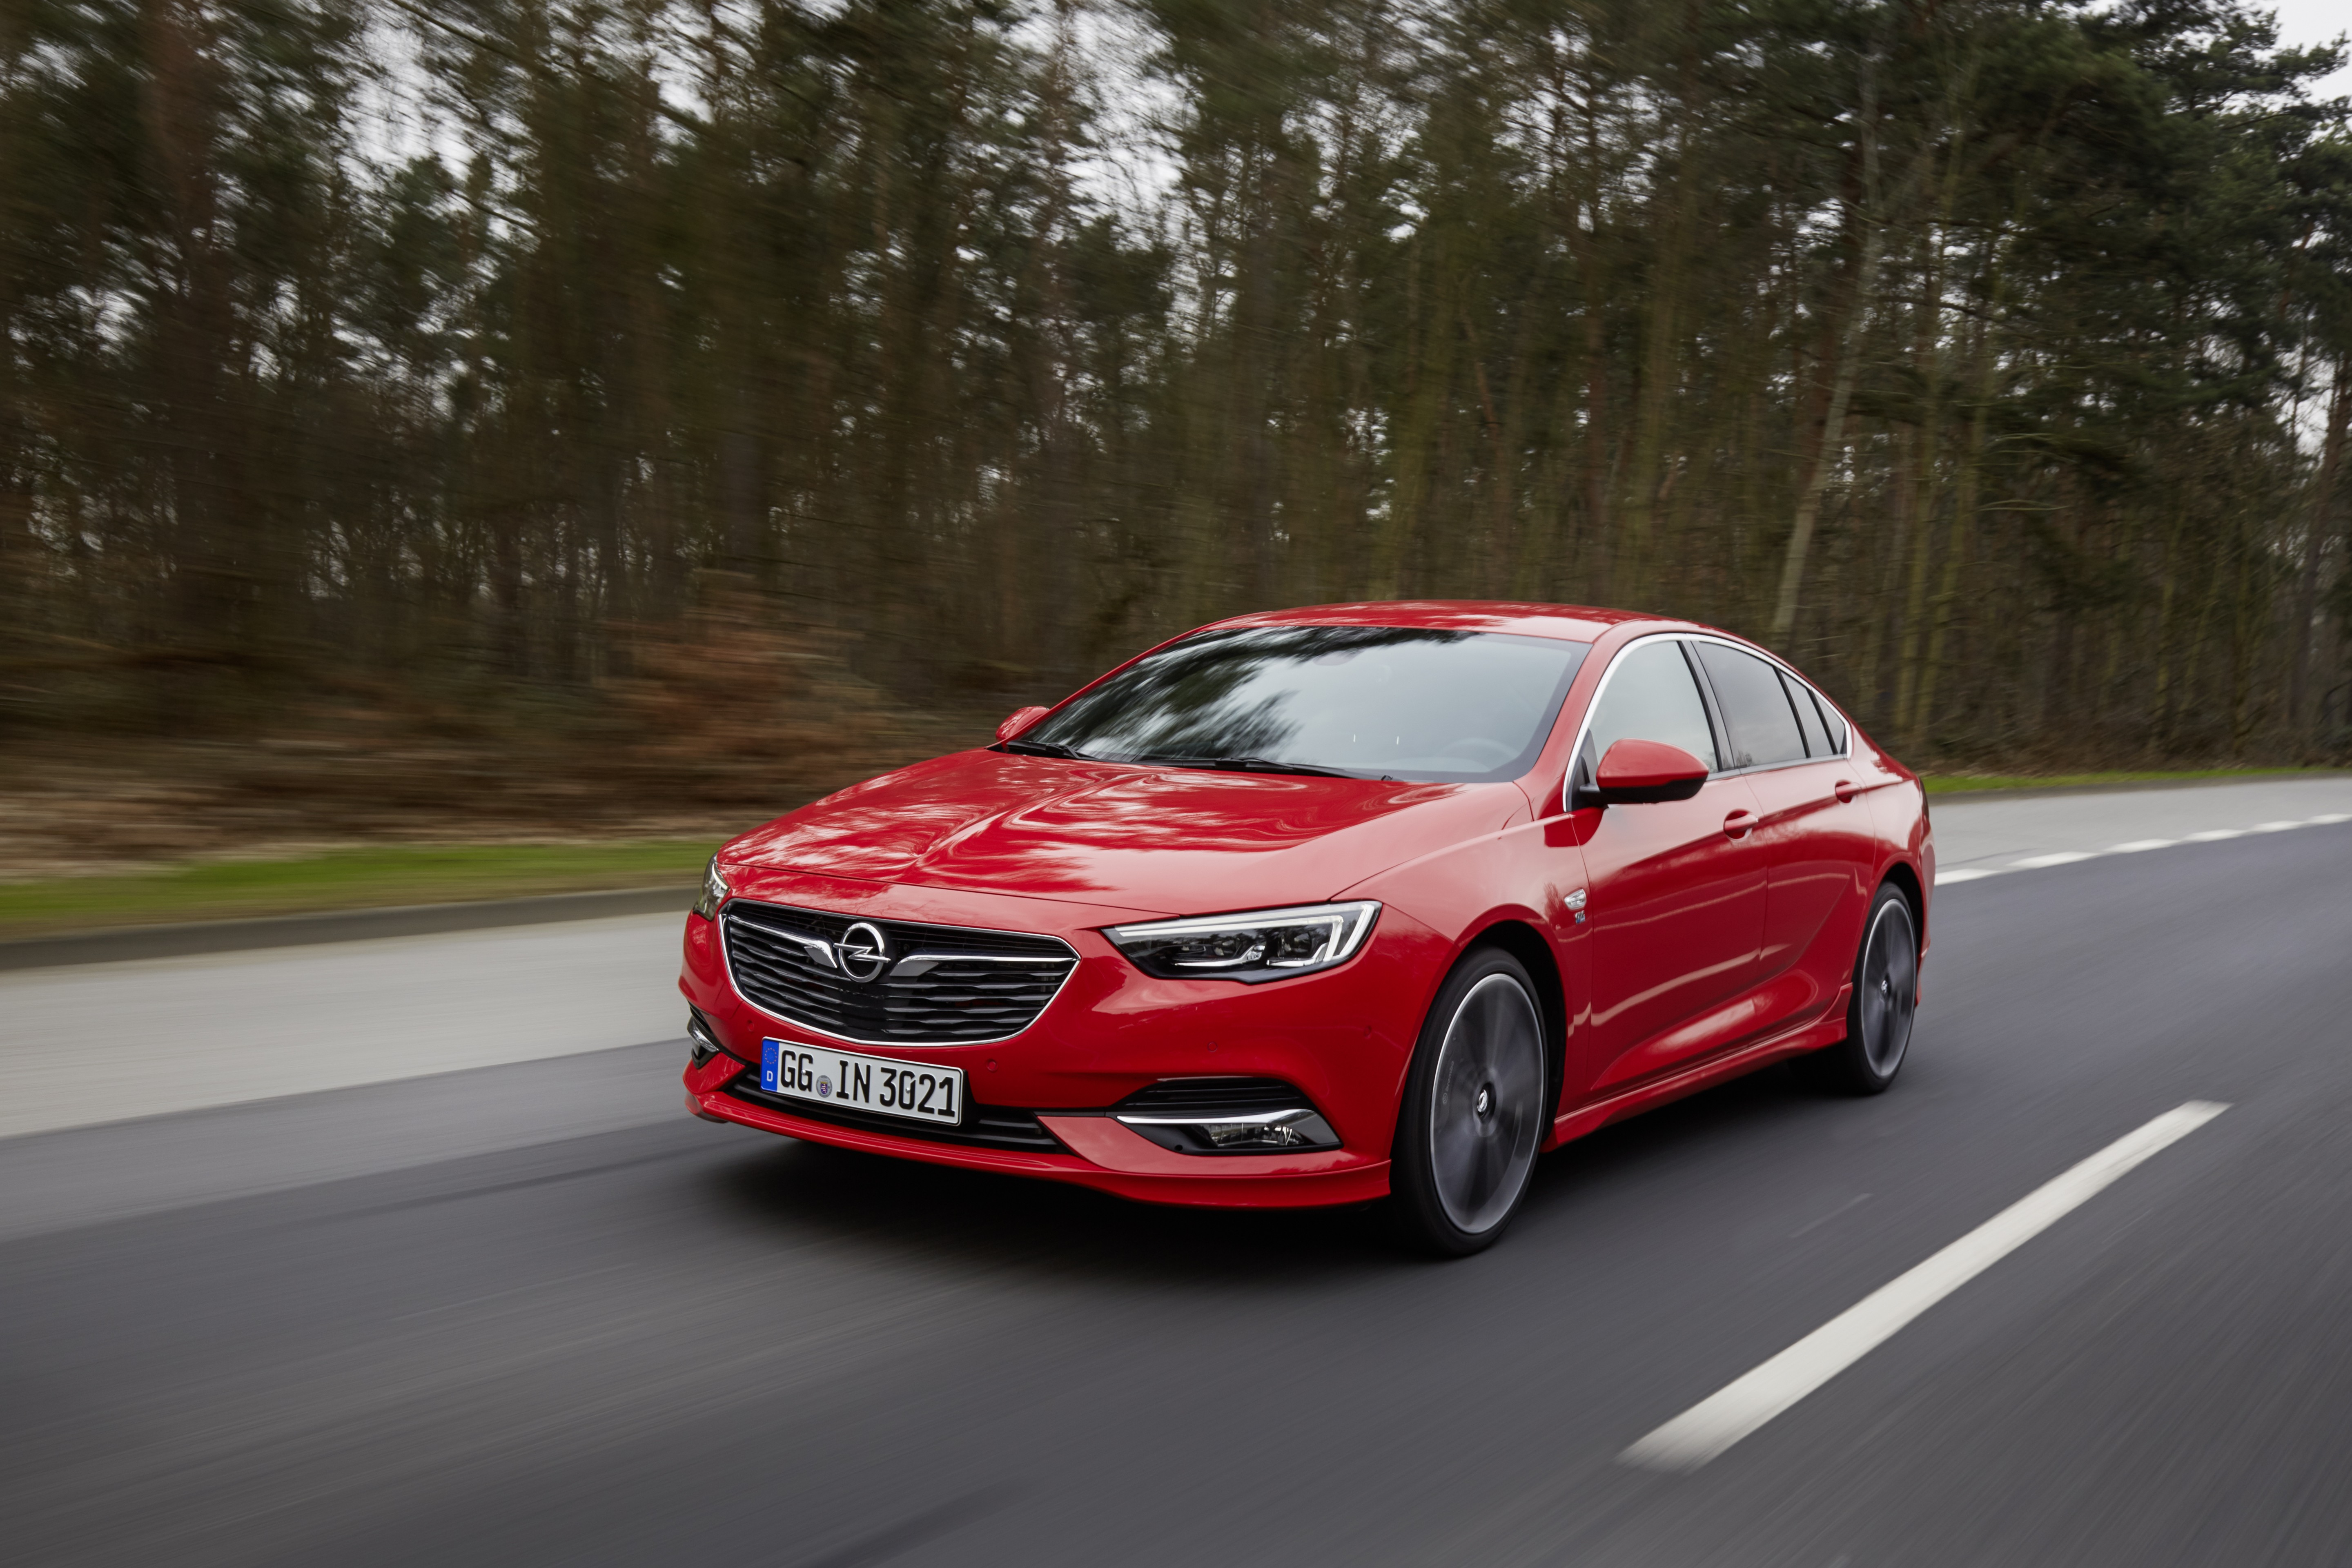 1 6 Turbo Engine, New Infotainment Systems Added to Opel